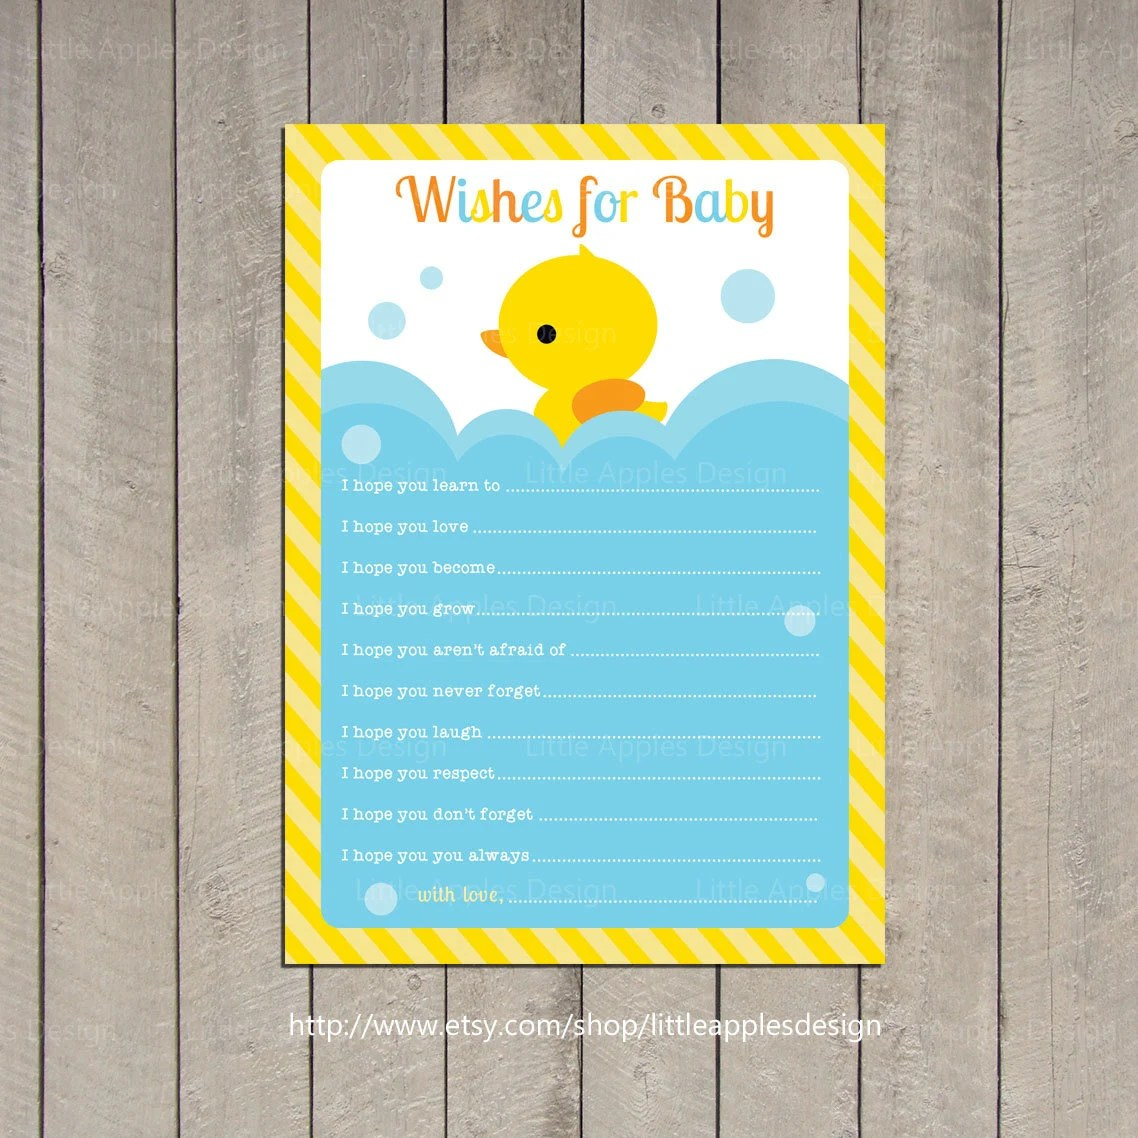 Wishes For Baby Rubber Duck Wishes For Baby Rubber Duck